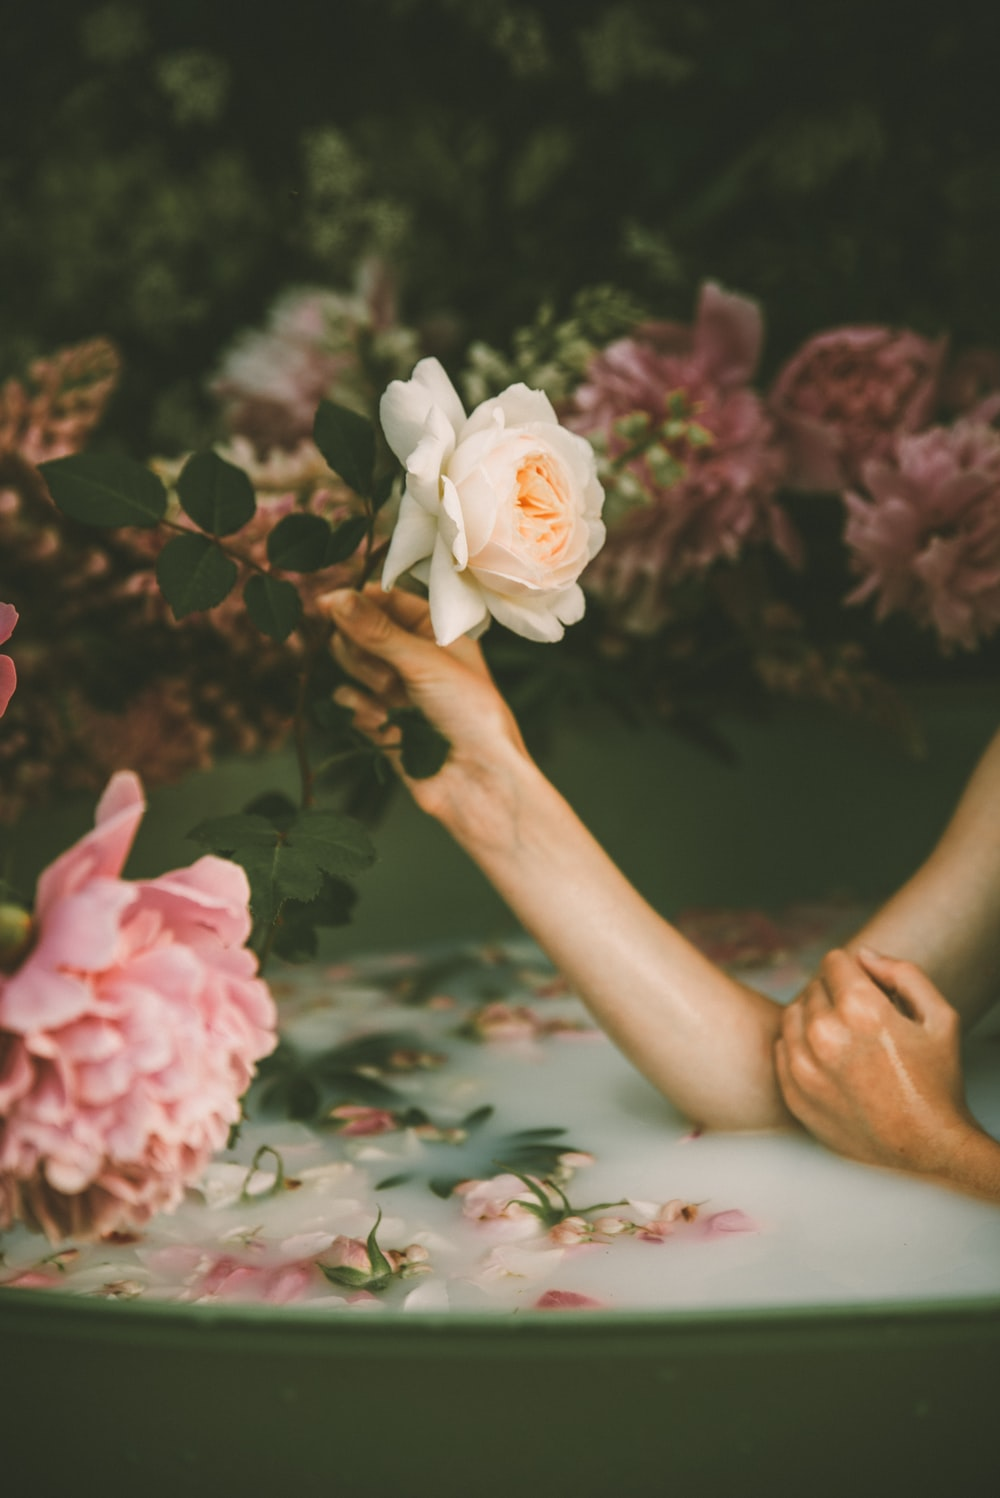 person holding white rose flower